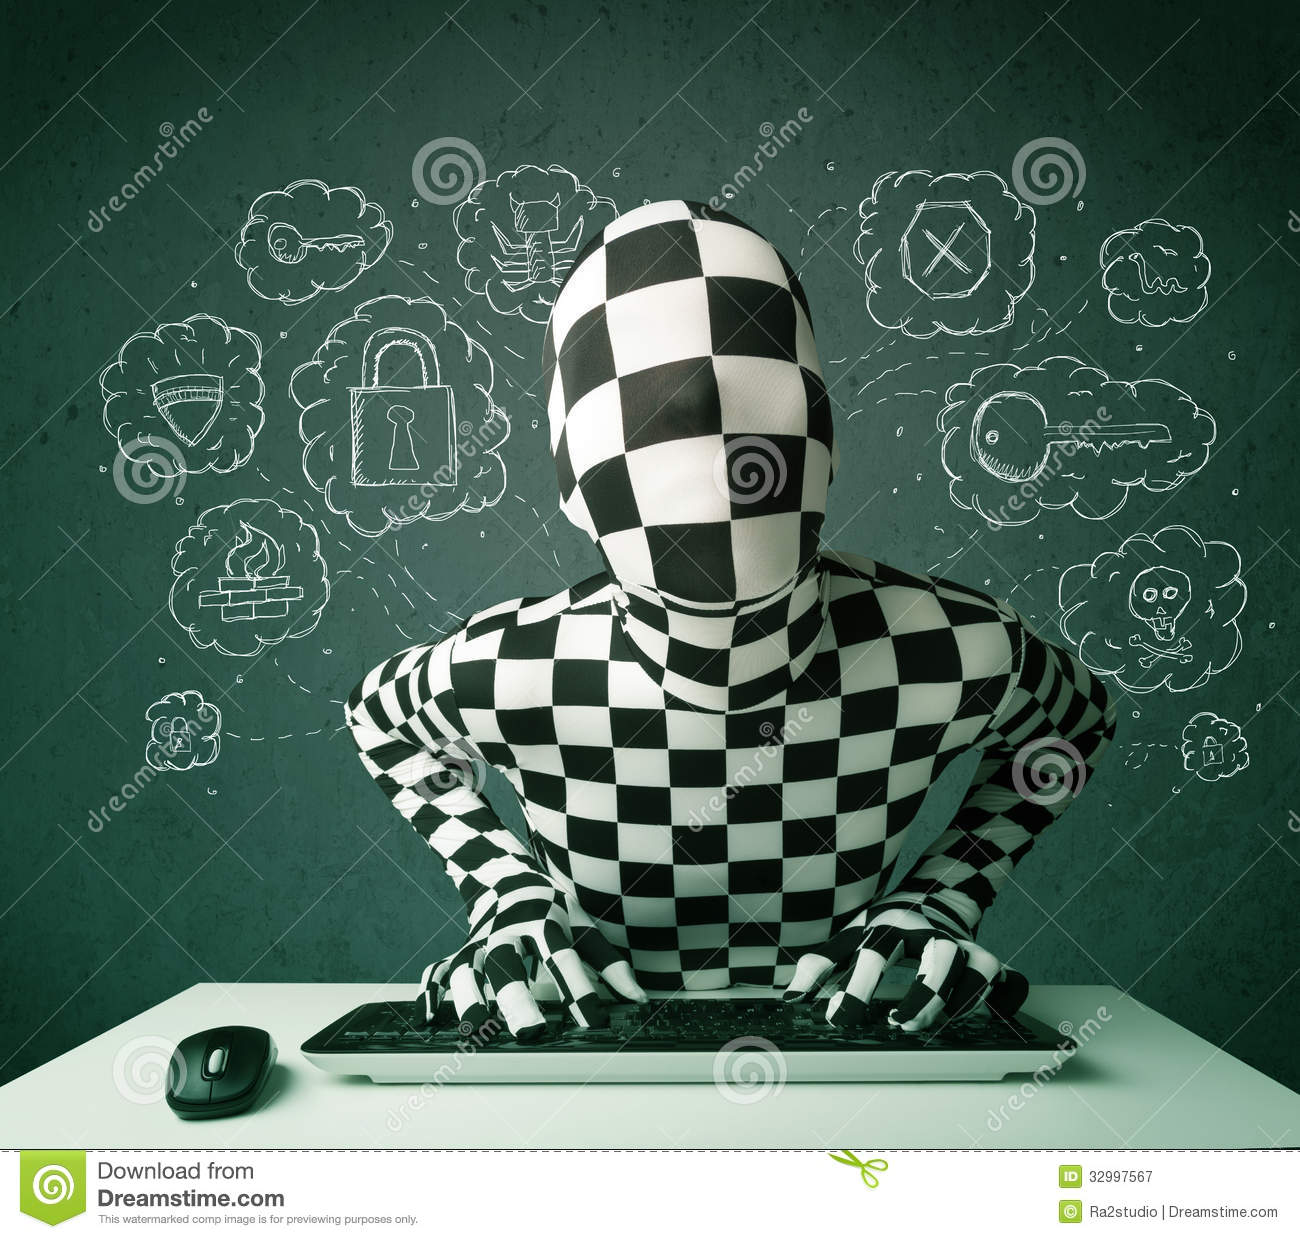 hacker in mask morphsuit with virus and hacking thoughts